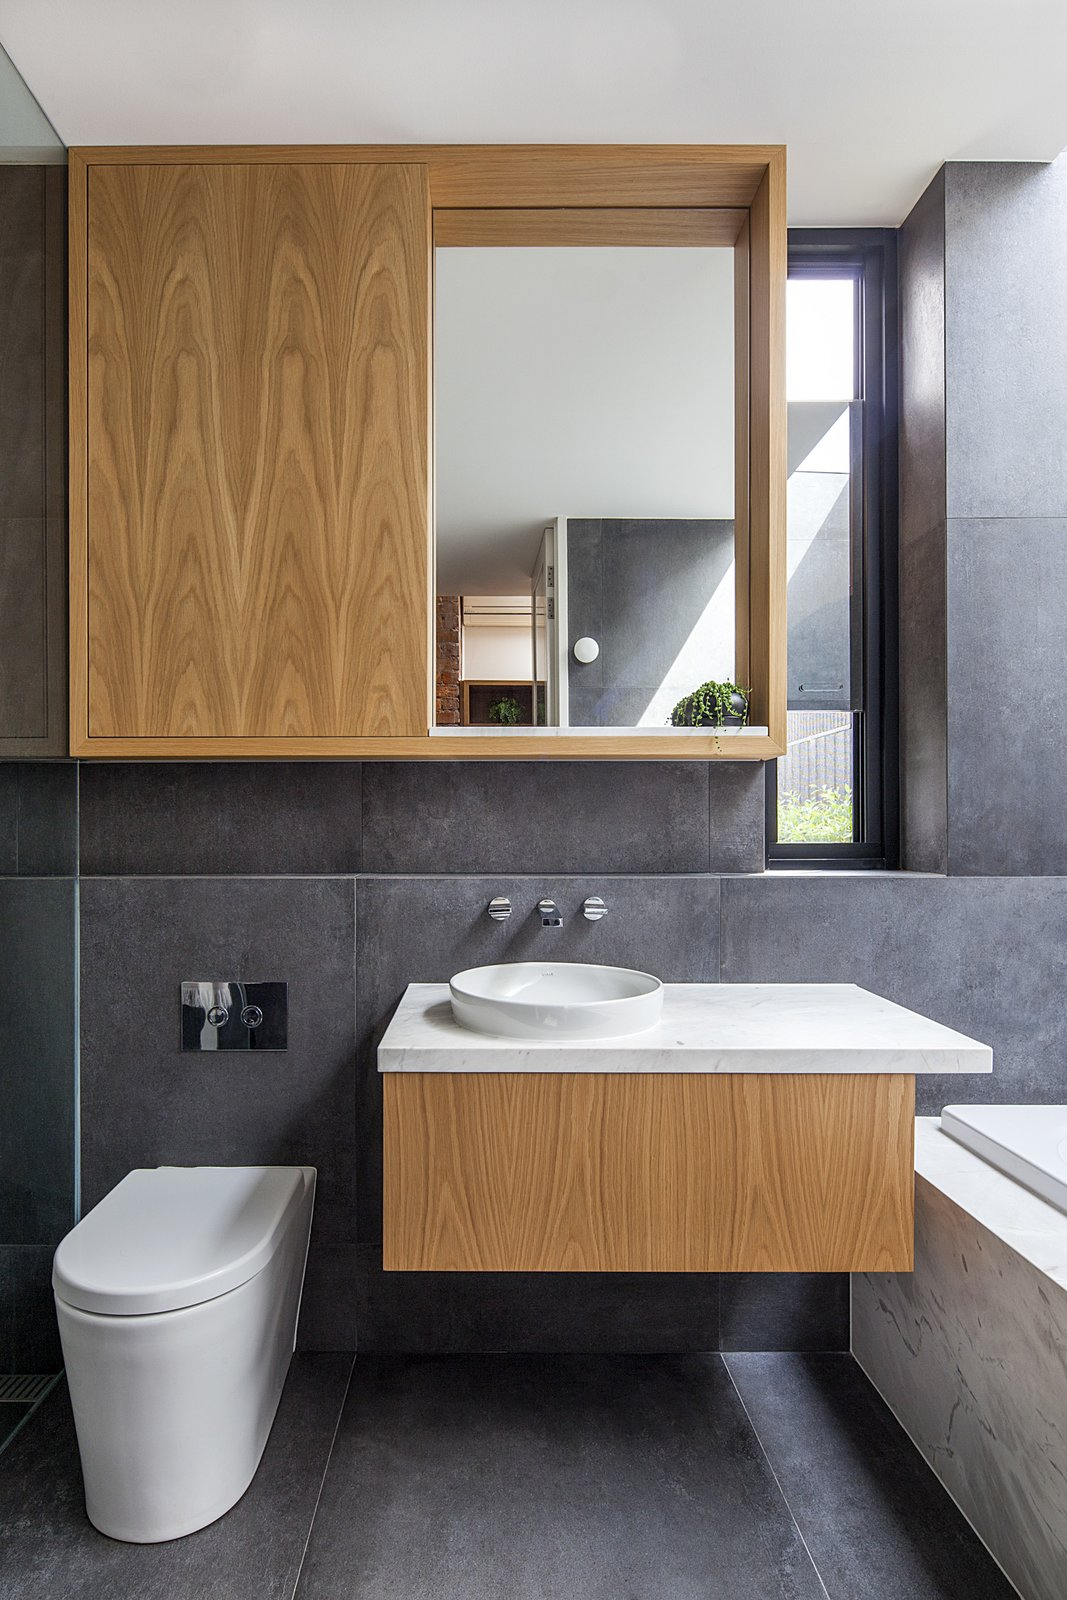 Bath Room, One Piece Toilet, Drop In Tub, Vessel Sink, and Marble Counter Oak cabinetry topped with marble continues the kitchen's themes in a bathroom.  Photo 9 of 11 in A Streamlined Addition Serves a Family of Four in Australia